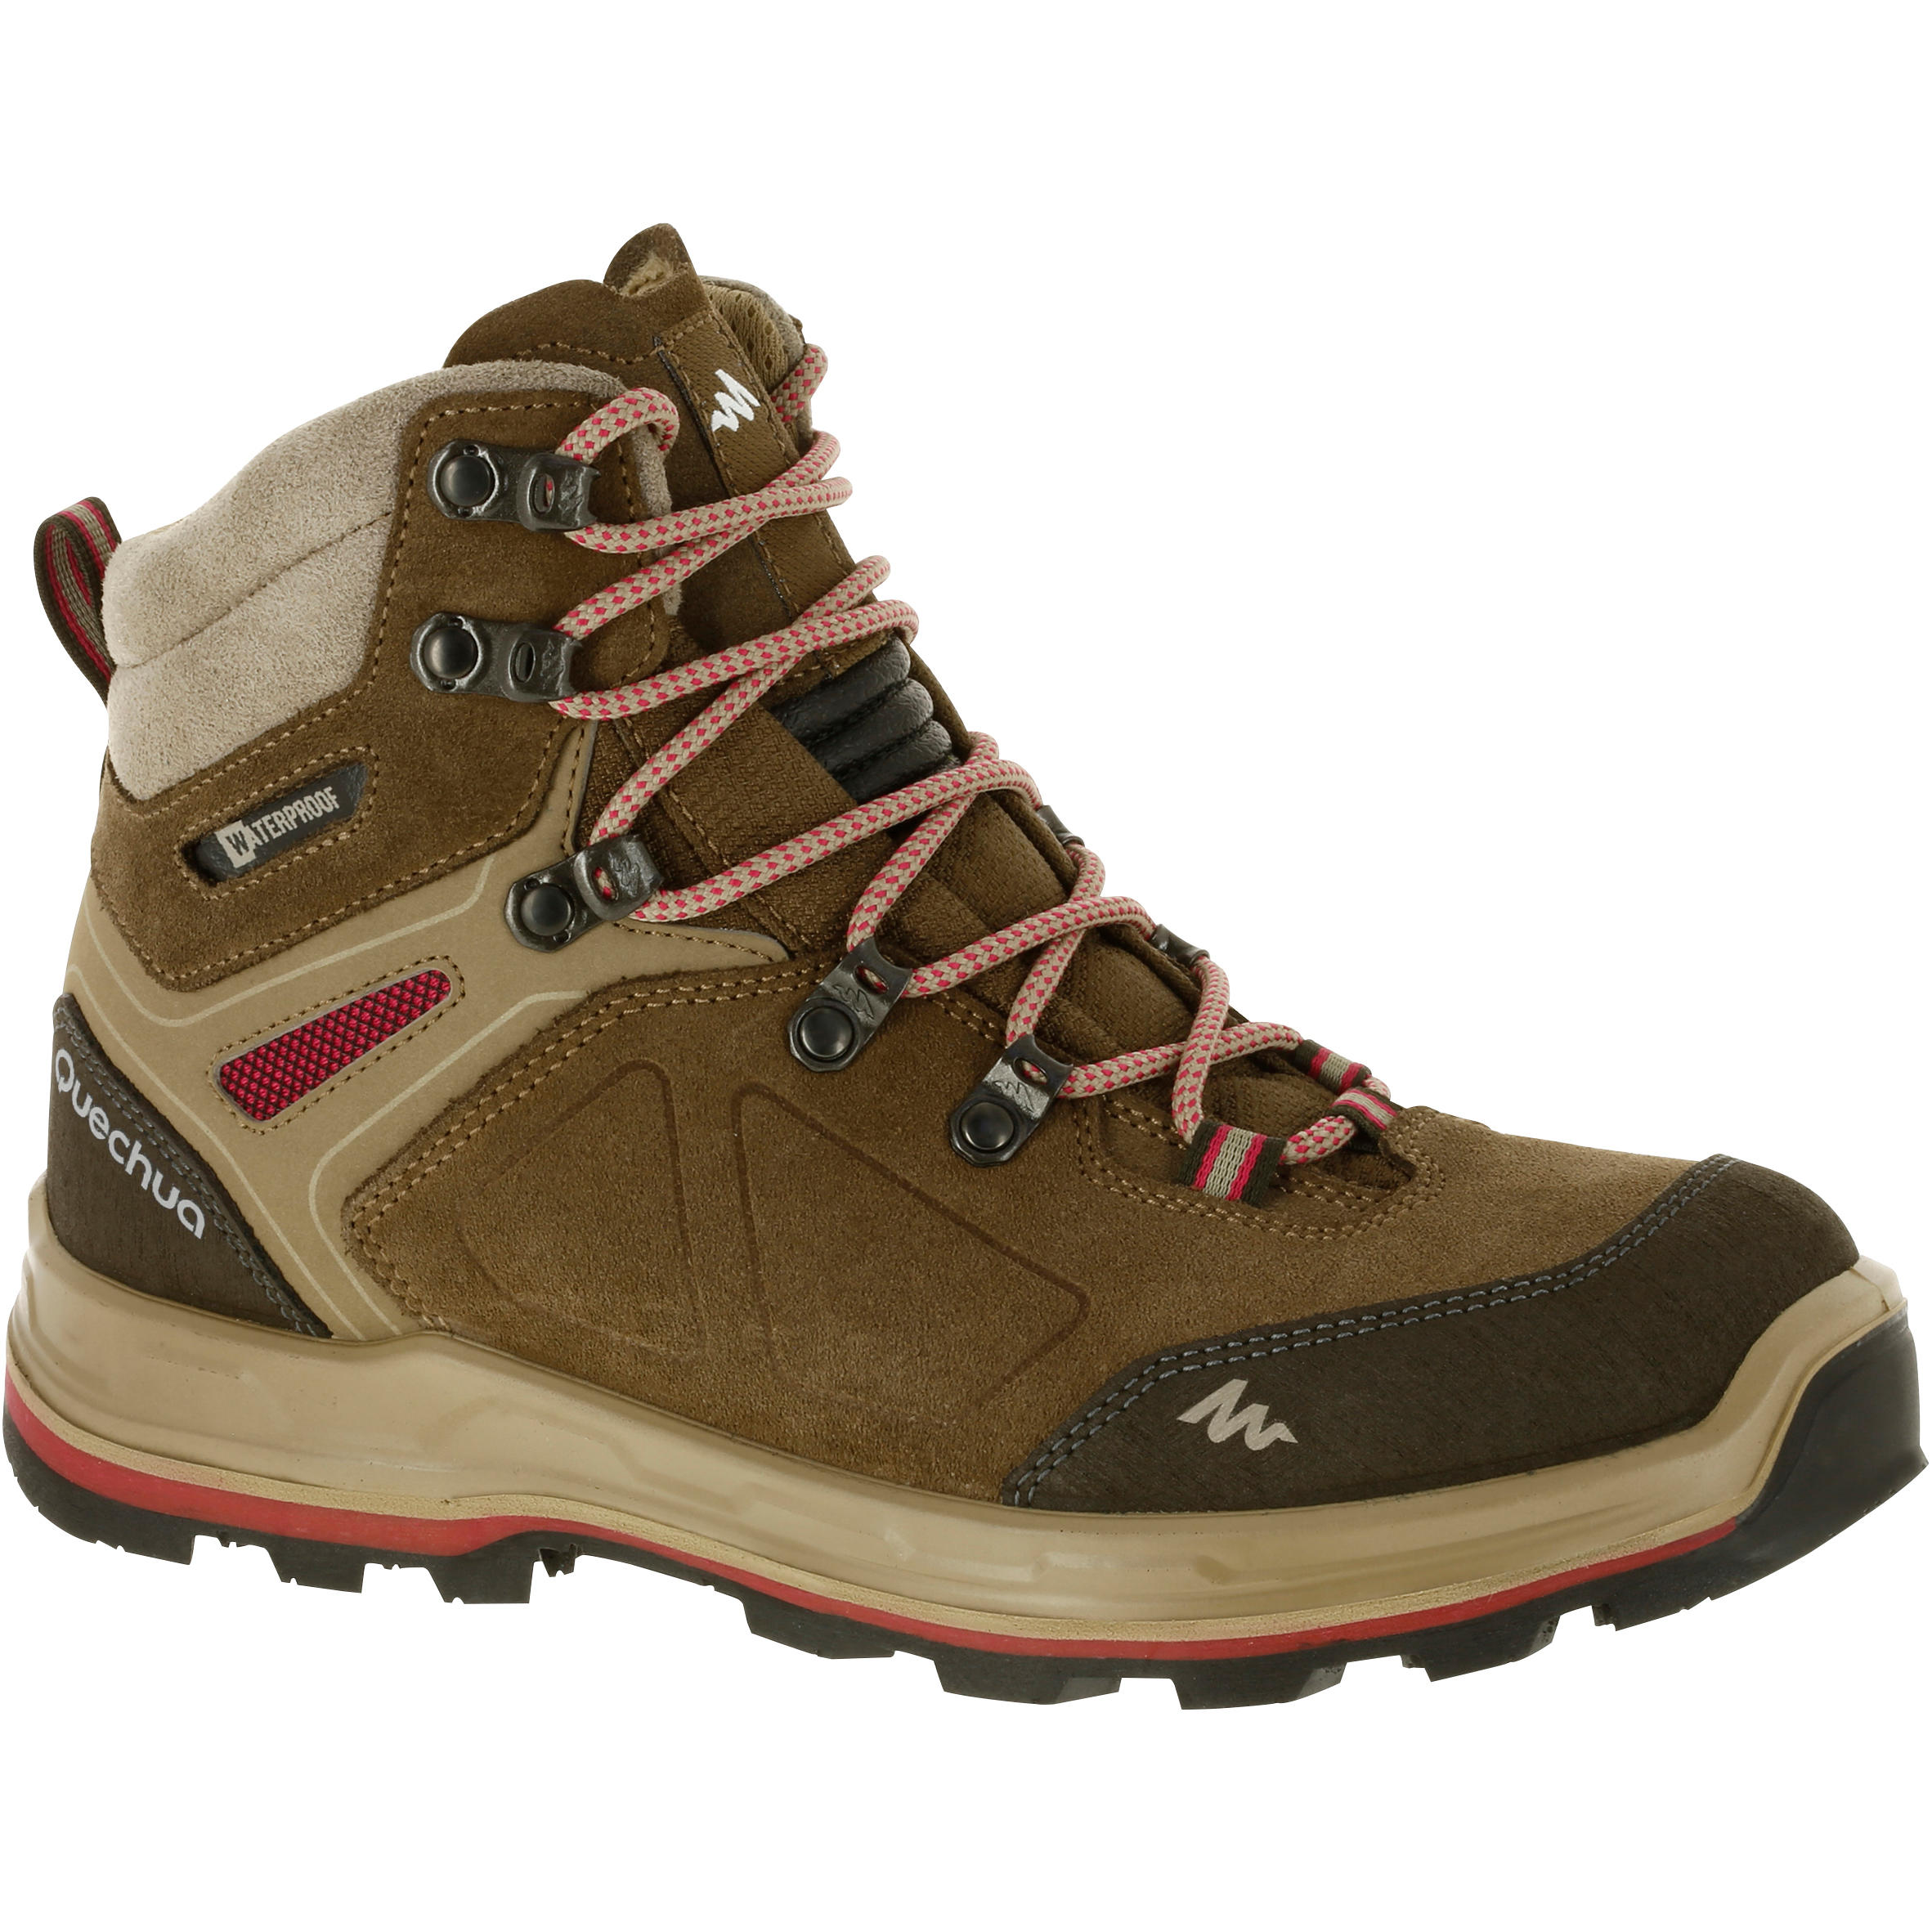 Women's TREK 100 Trekking Shoes